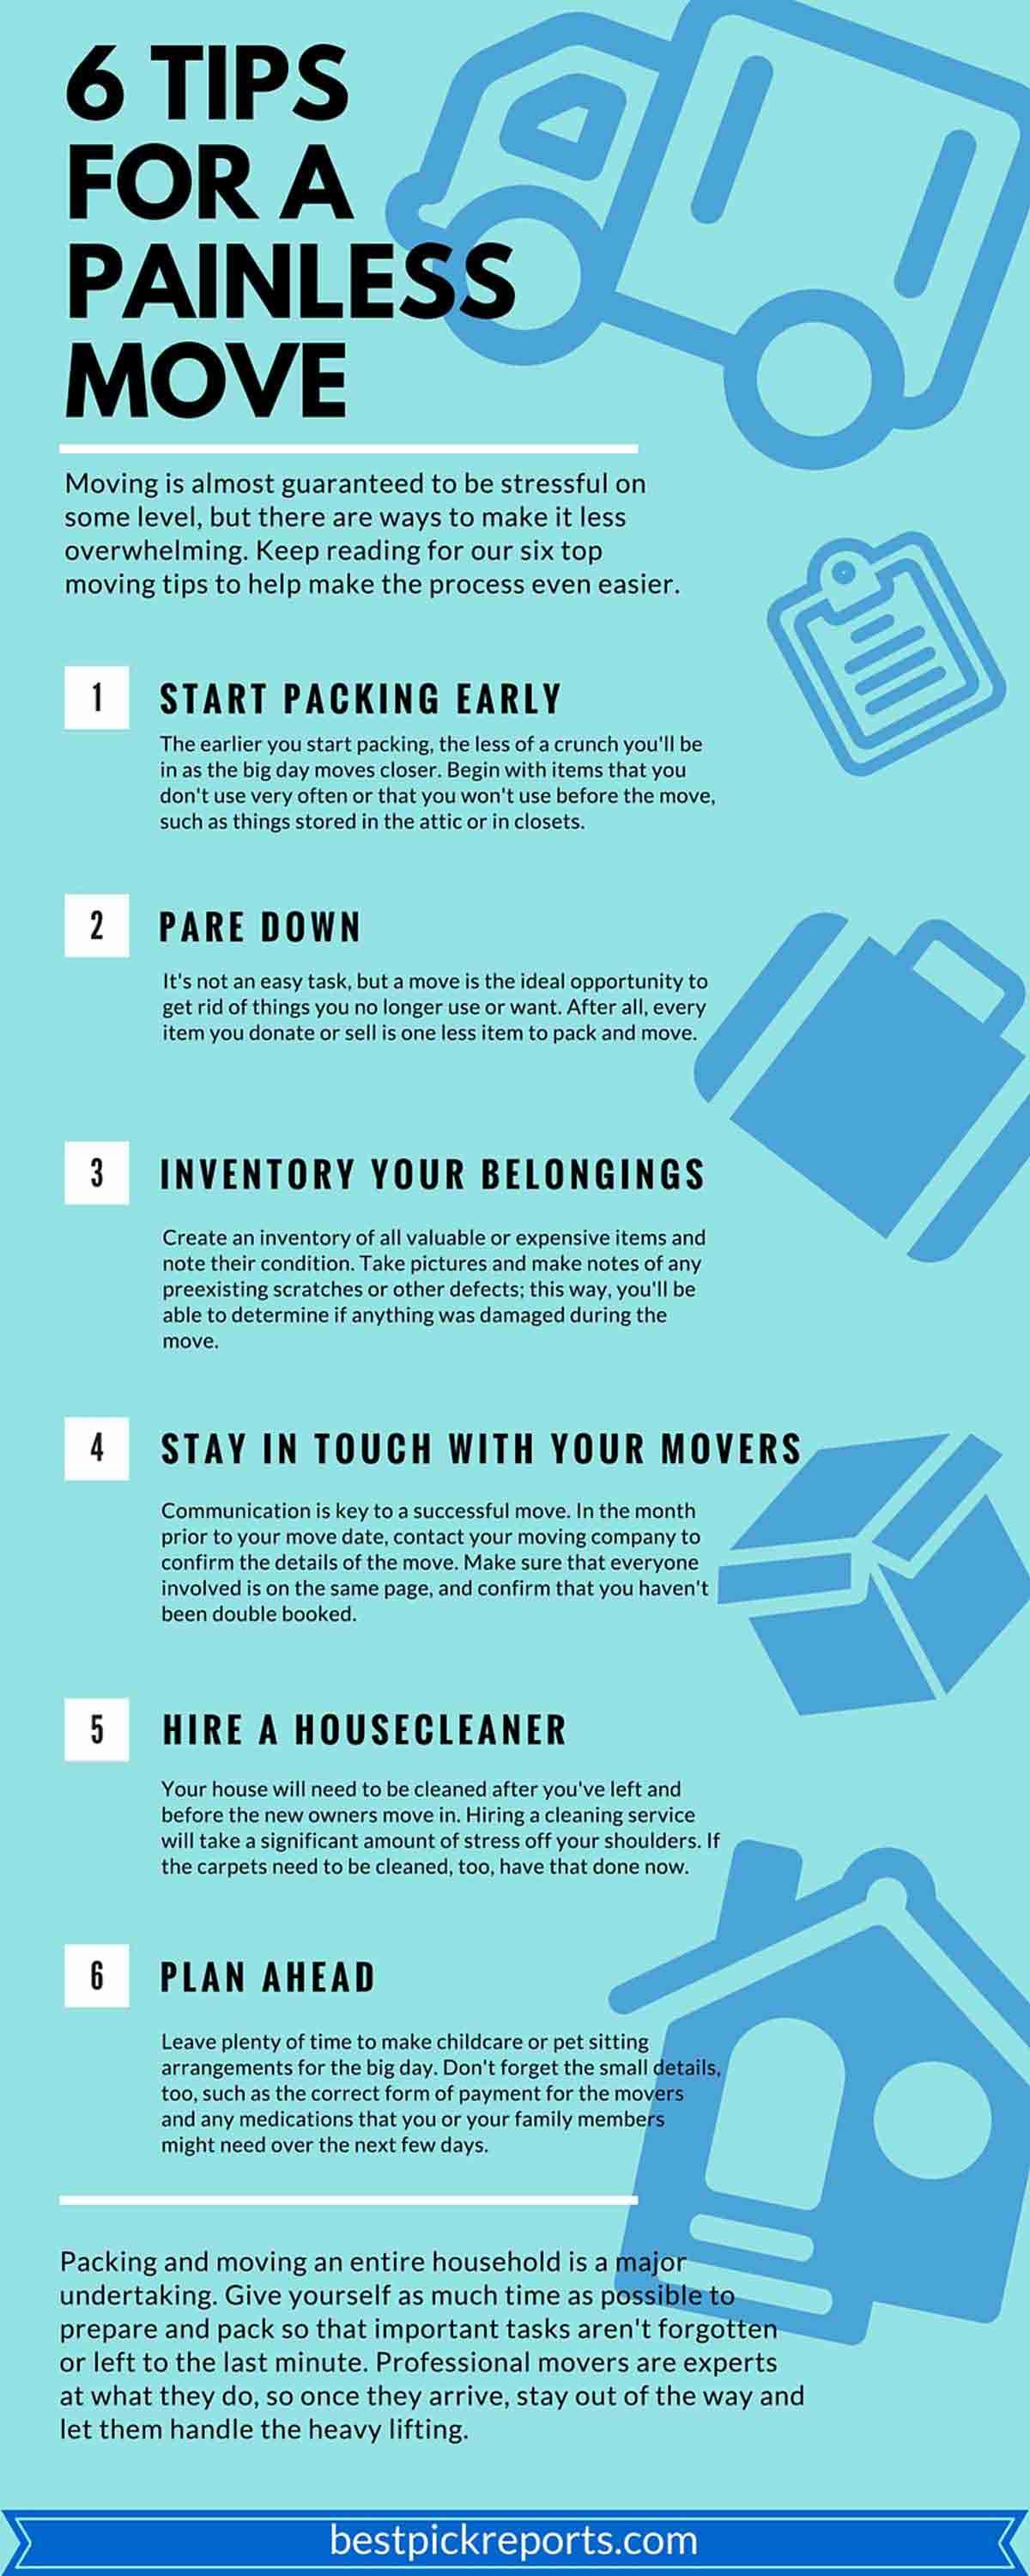 6 Tips for a Painless Move